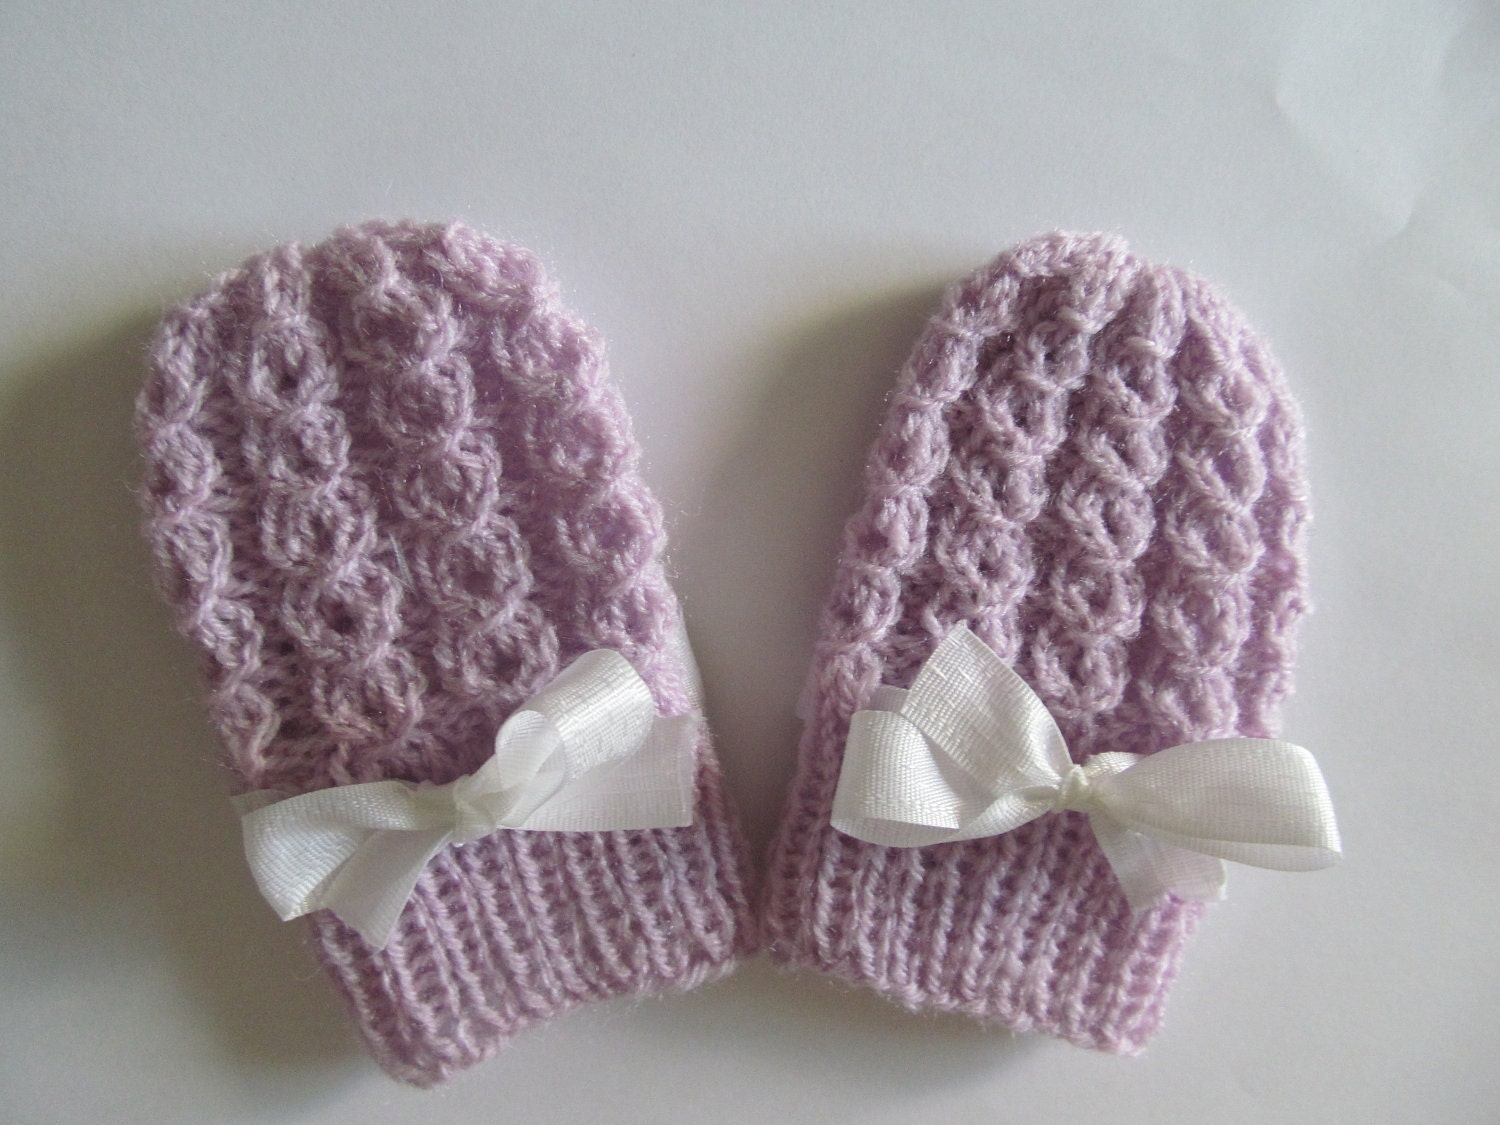 Free Crochet Pattern For Thumbless Mittens : PDF Knitting PATTERN Baby Thumbless Mittens Infant by Lacywork